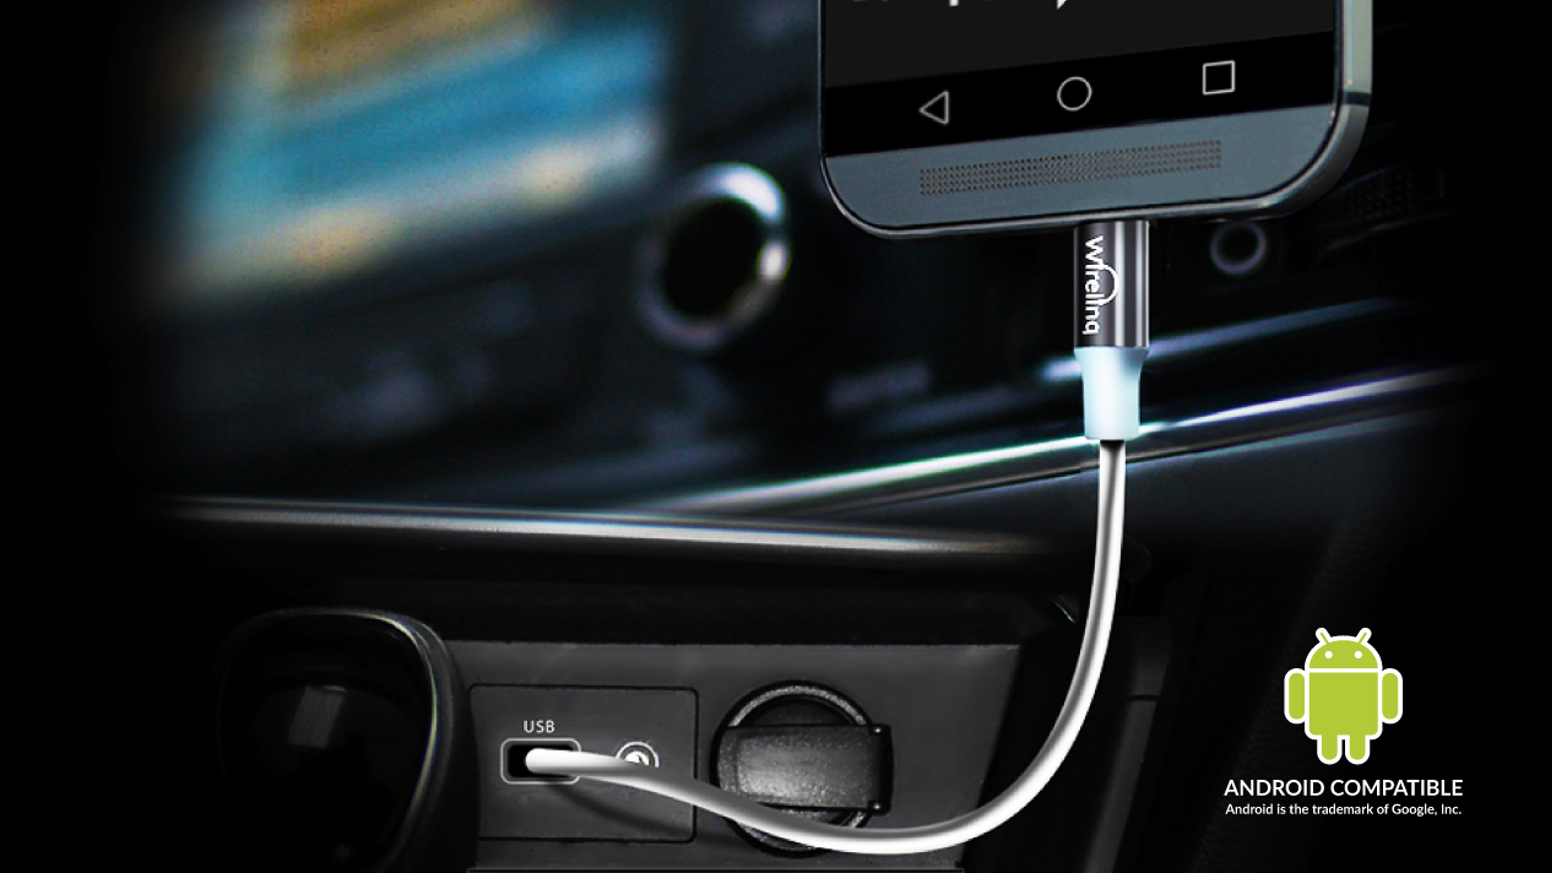 Wirelinq A Smart Android Usb Converter Cable For Car Music By Grom Ipod Data To Hdmi Wiring Diagram Connects Your Phone The Stereo Controls And Text Display